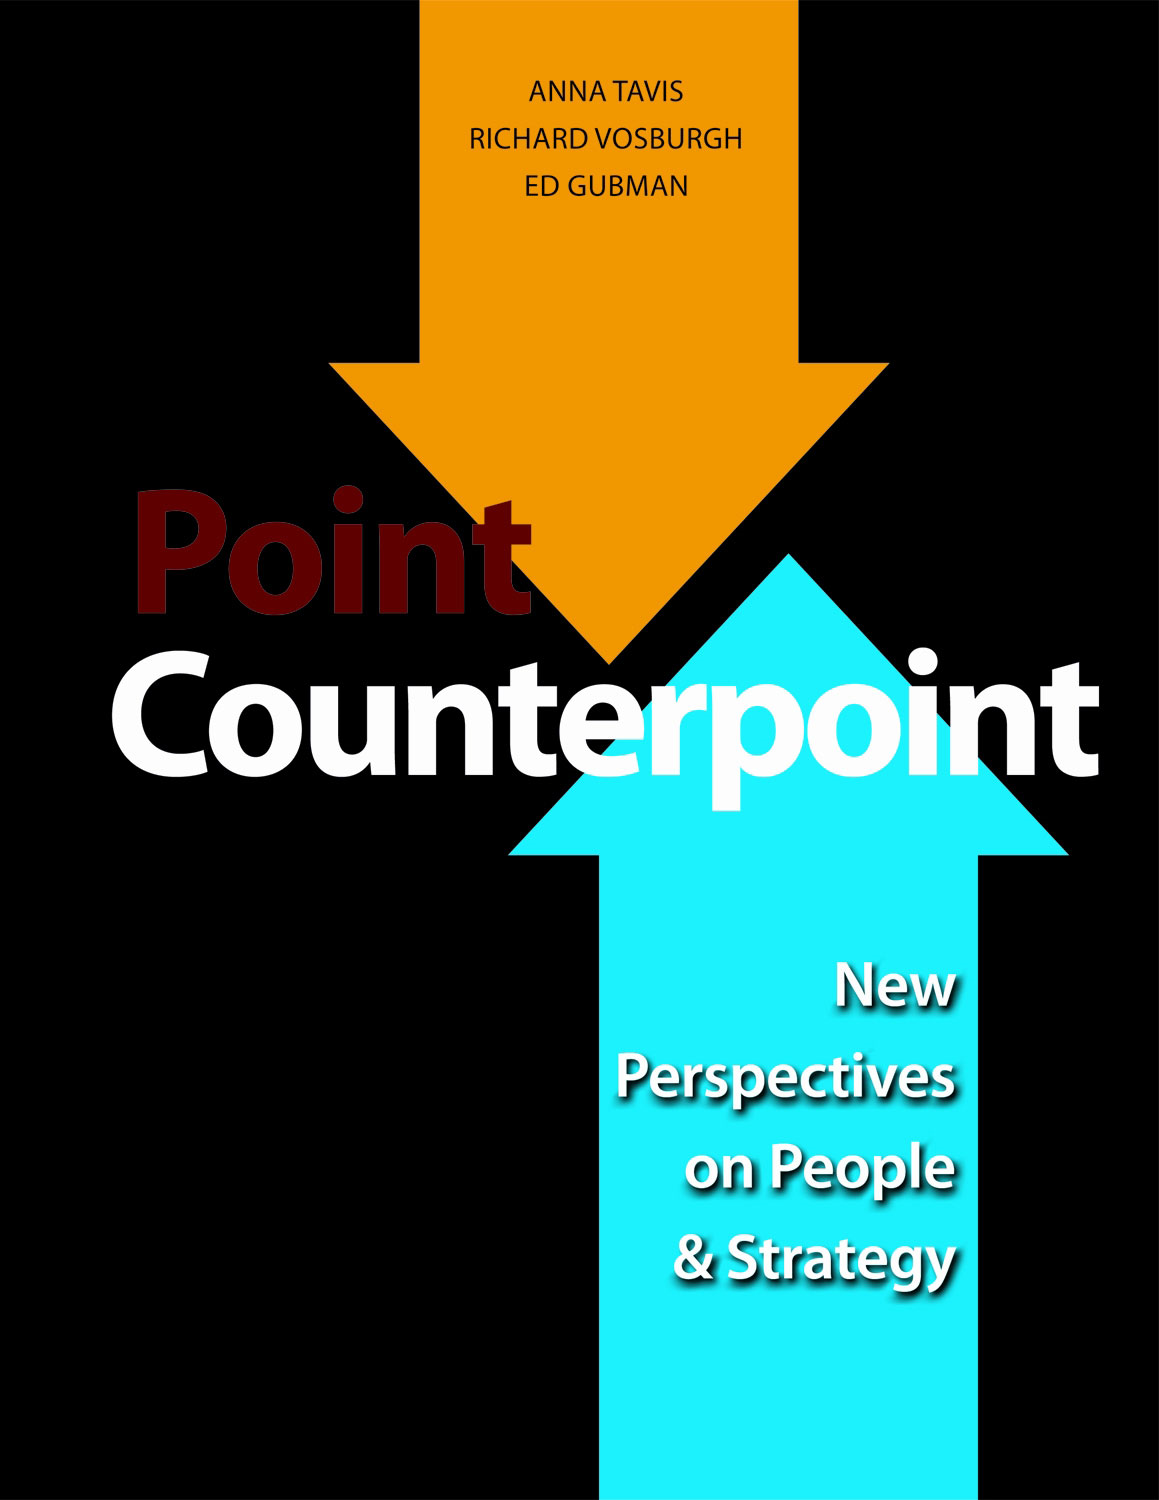 Point Counterpoint: New Perspectives on People & Strategy By: